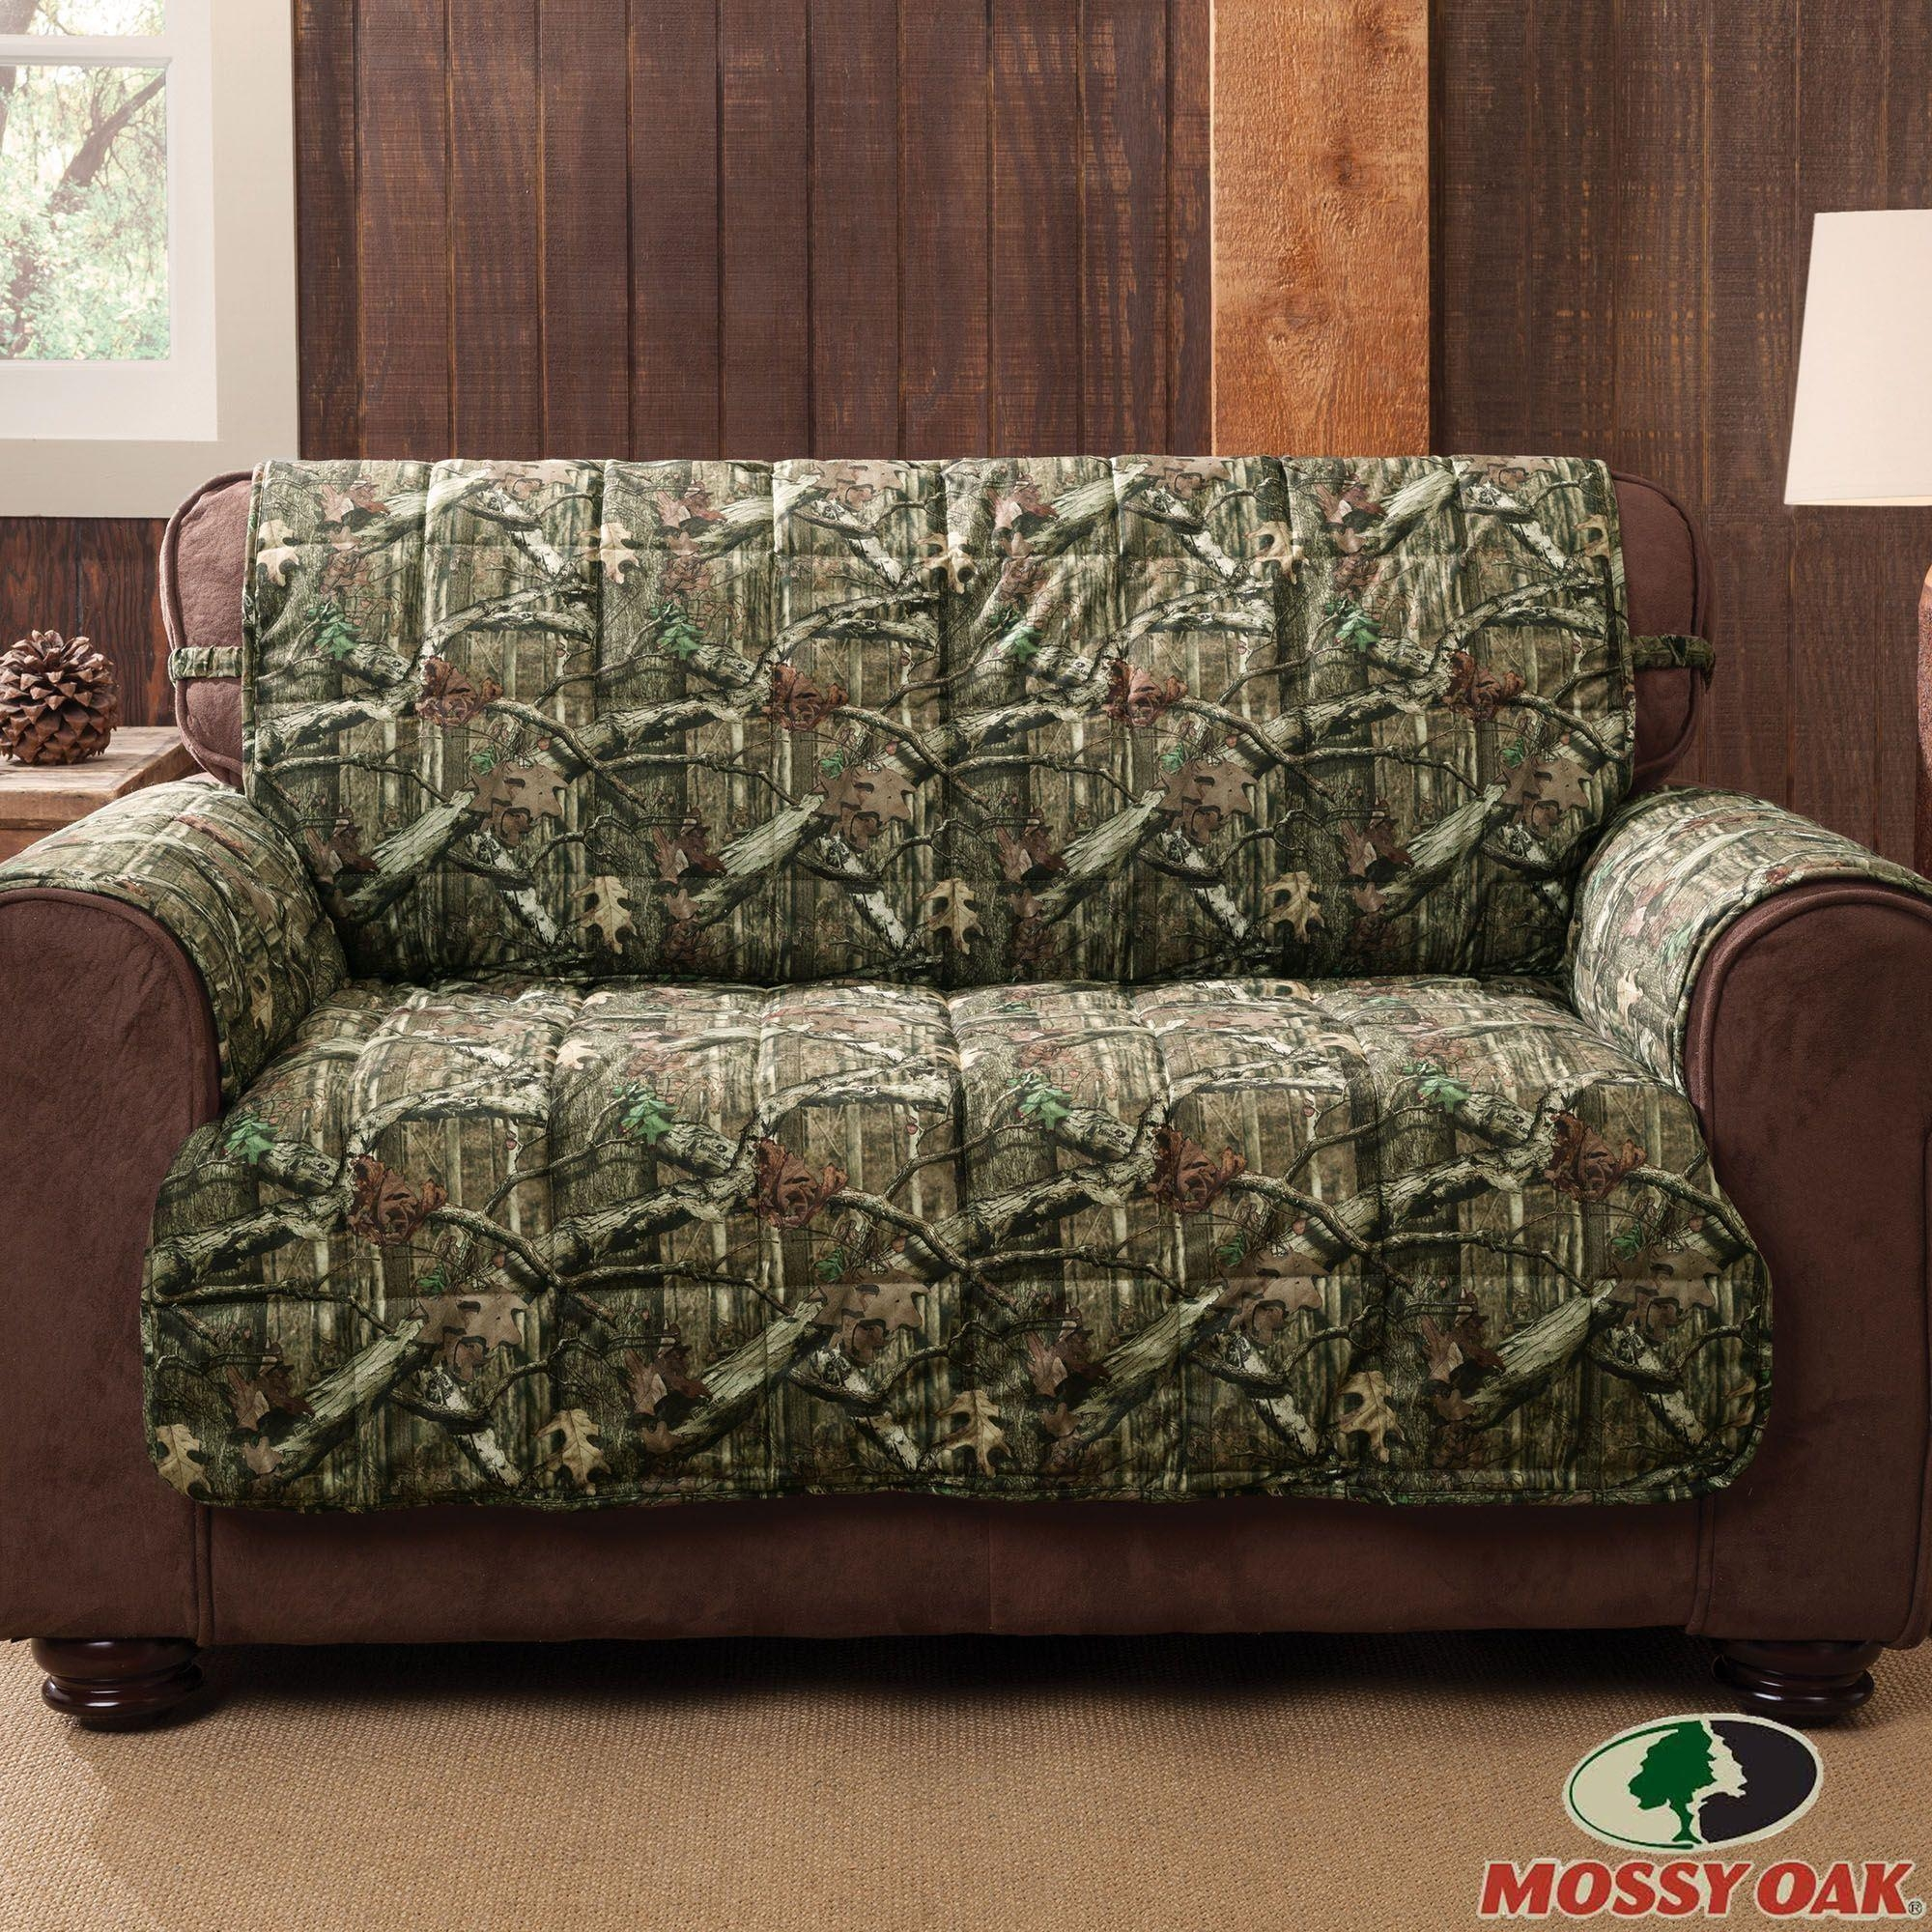 Mossy Oak Break Up Infinity Camo Furniture Protectors Throughout Camo Reclining Sofas (View 11 of 20)